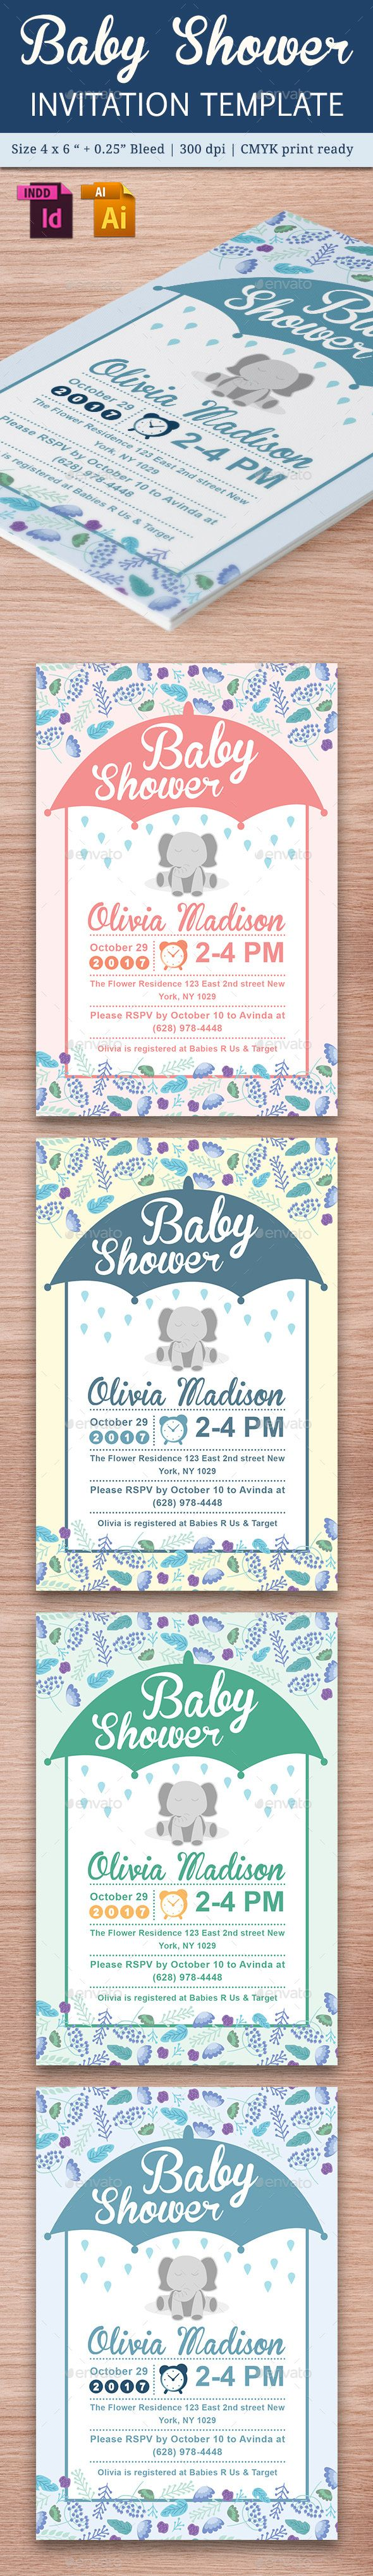 243 best card invite design template images on pinterest baby shower template vol 18 stopboris Gallery